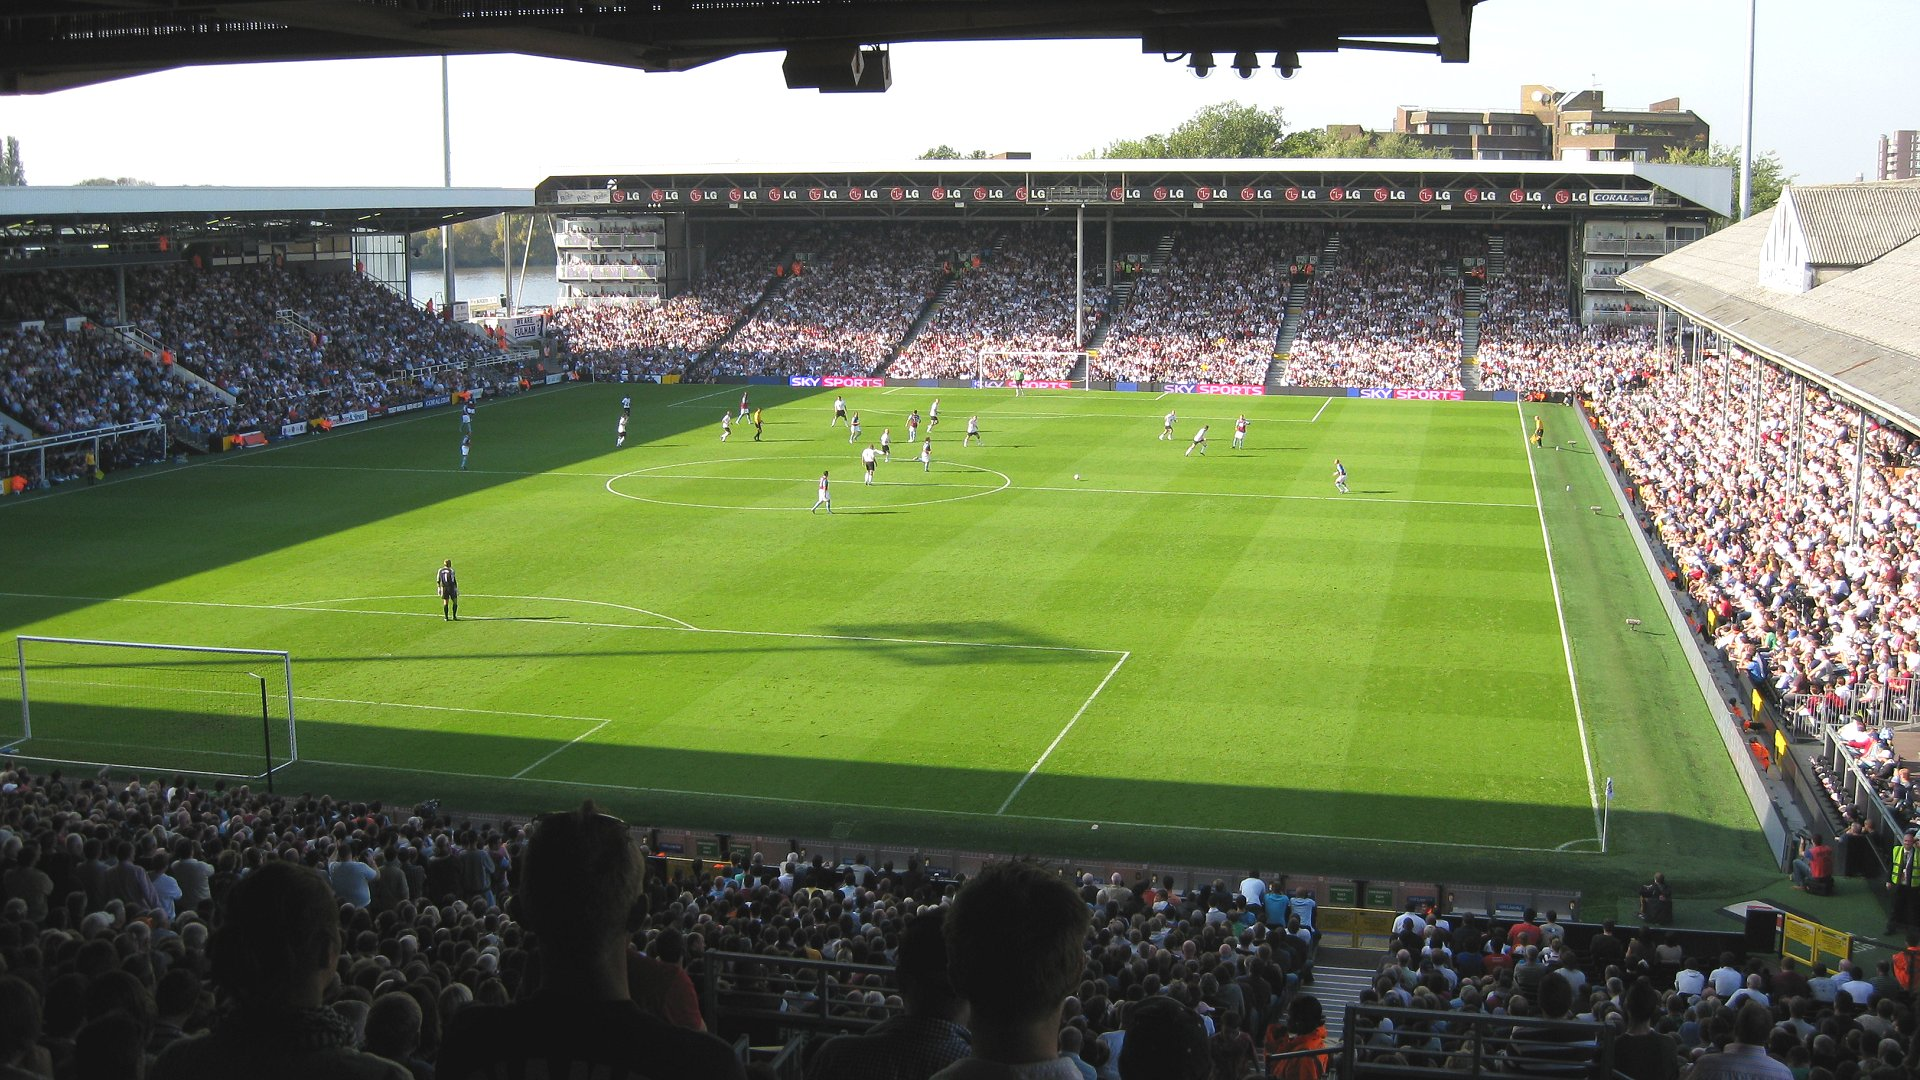 Fulham F C News: Fulham F.C. (Football Club) Of The Barclay's Premier League